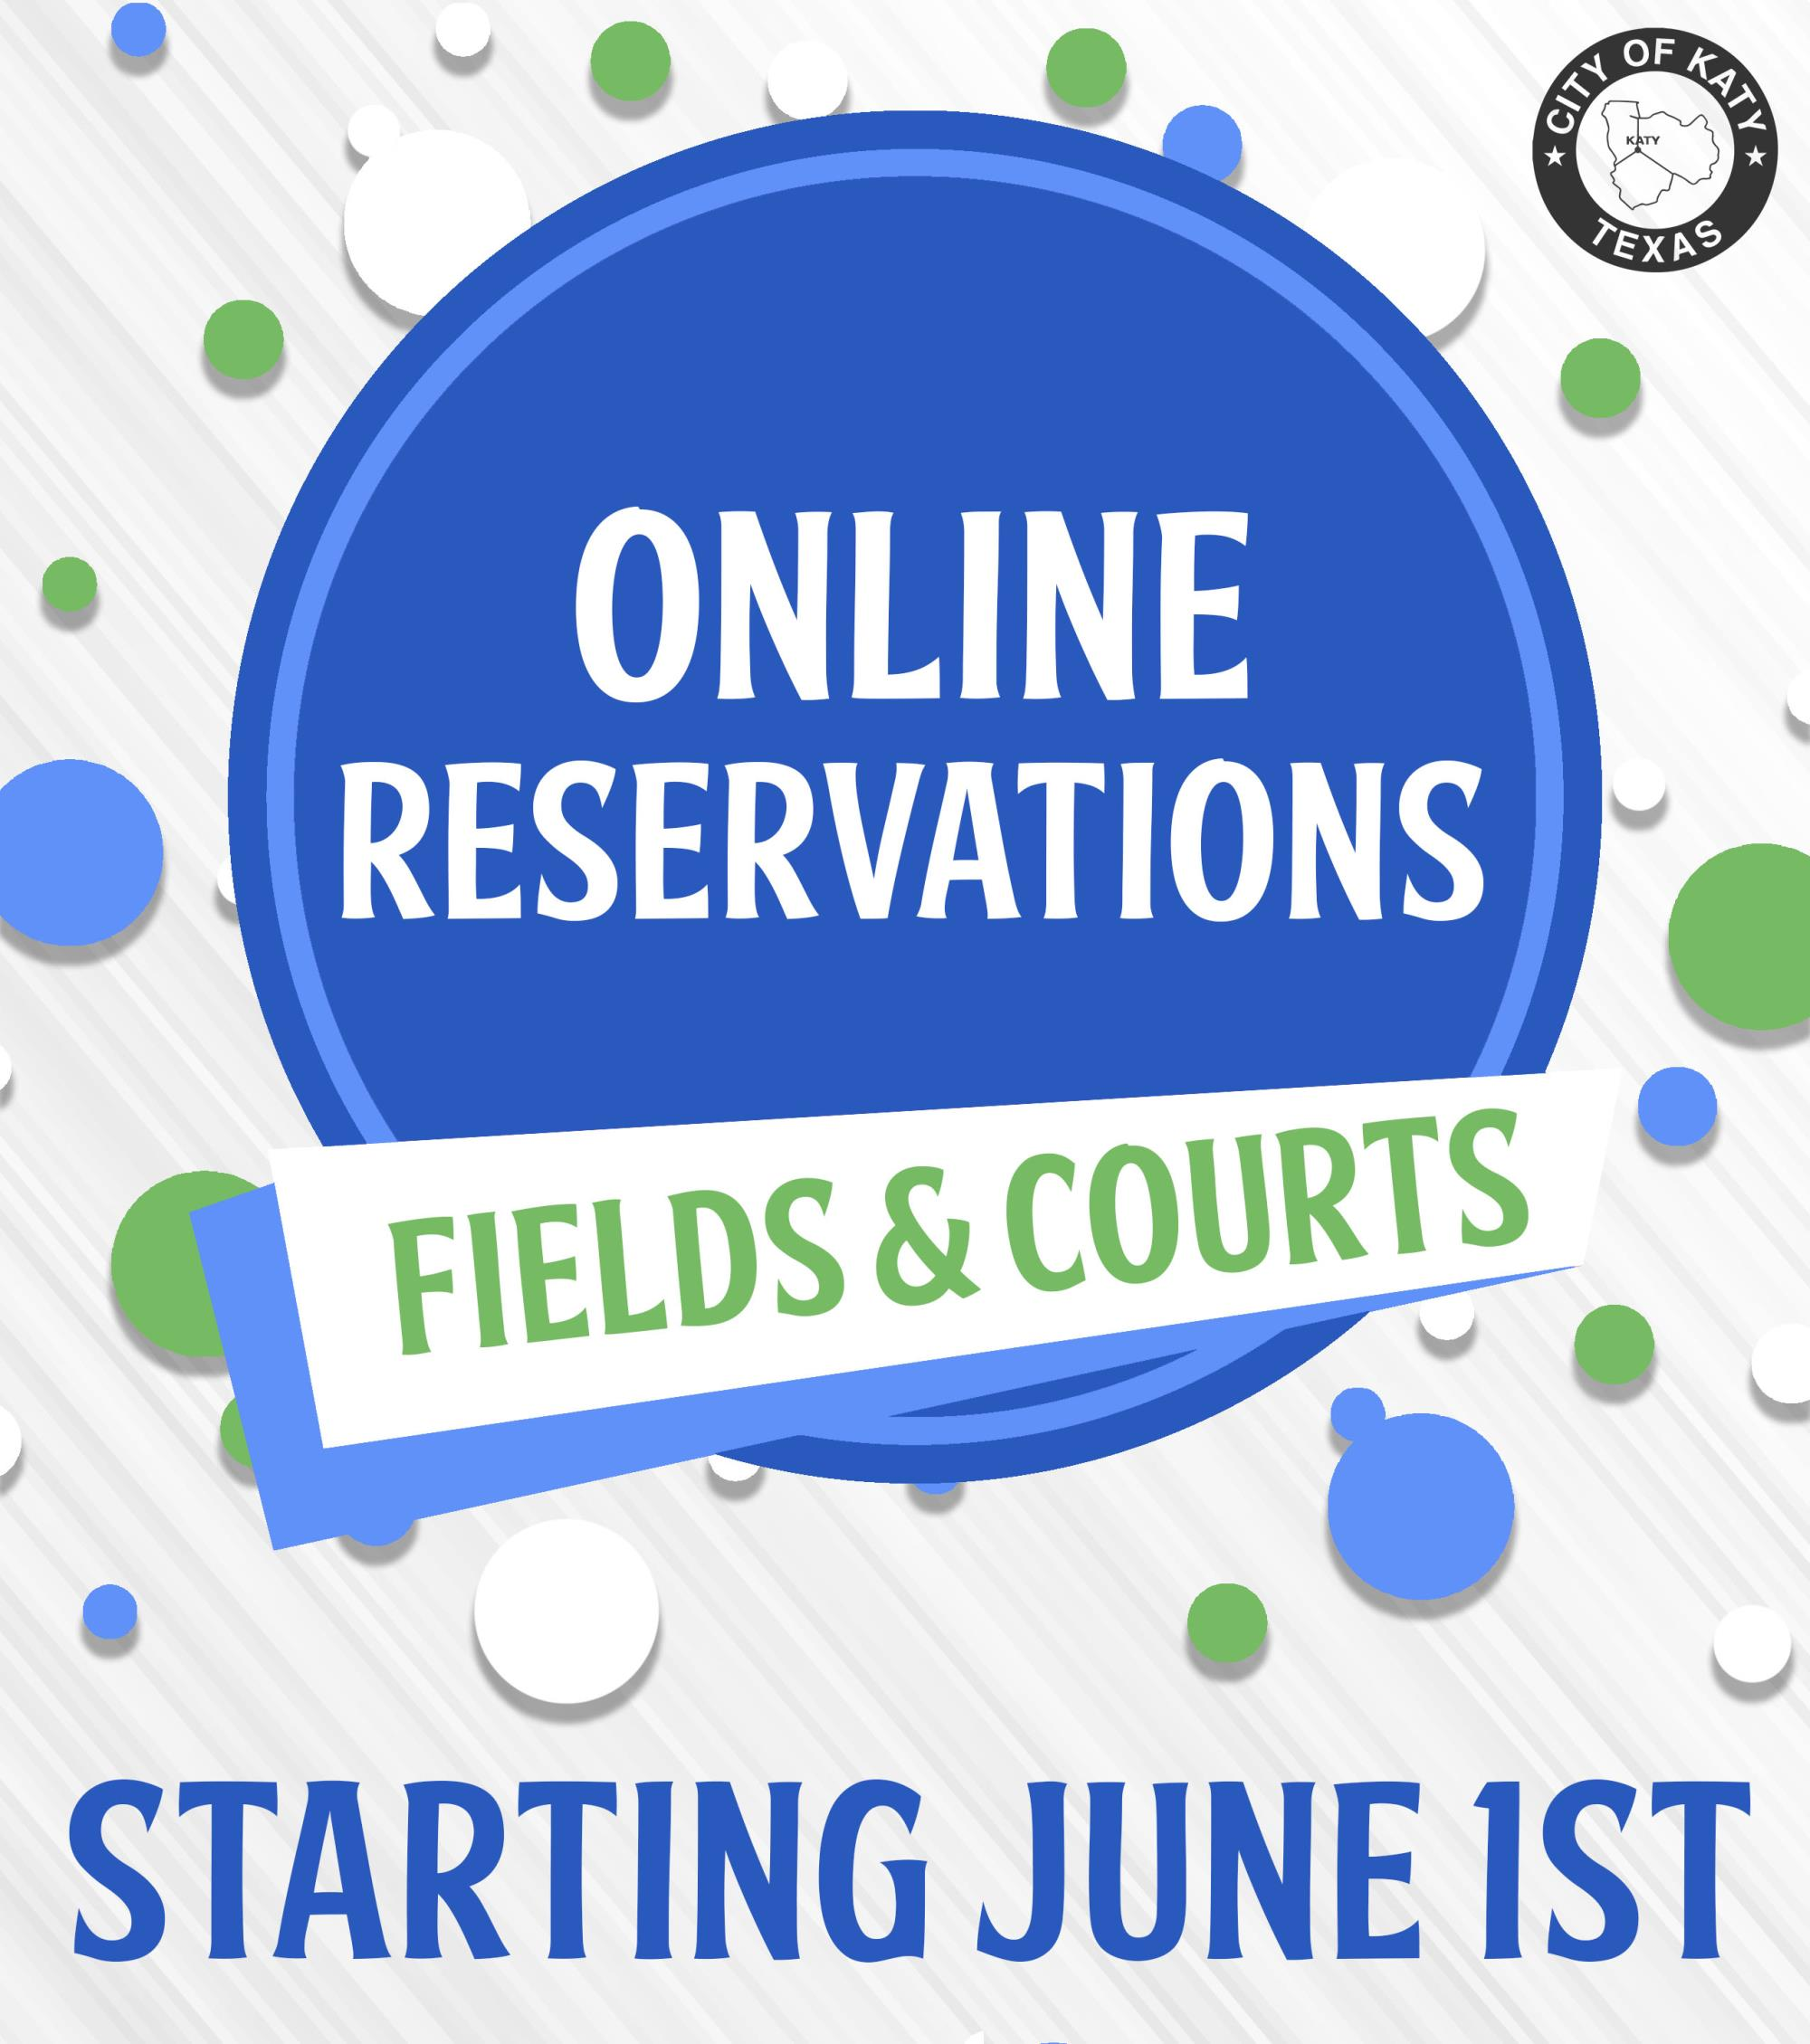 Online Field Reservations - Starting June 1st